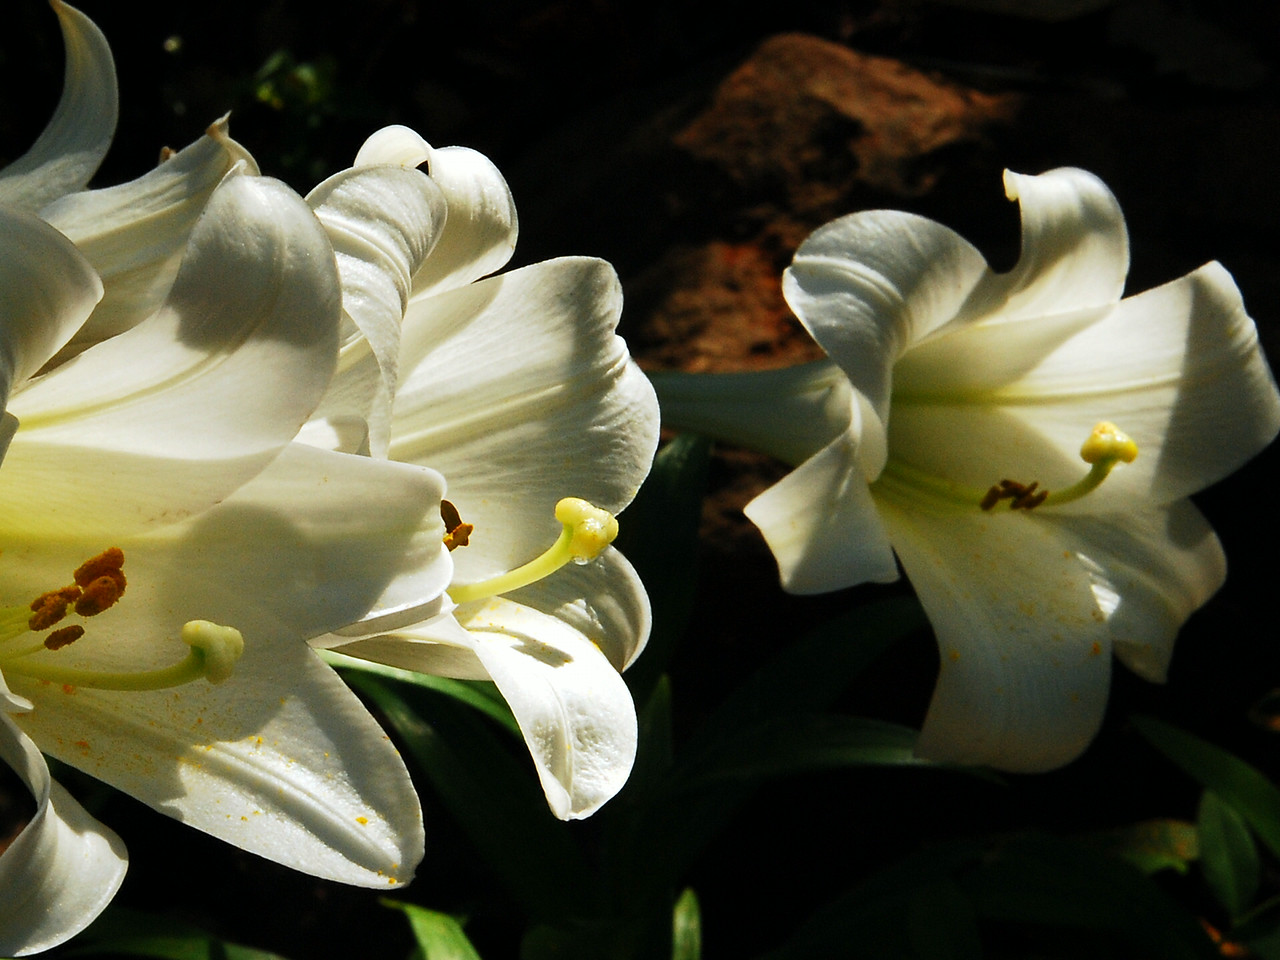 Garden Lillies in Afternoon Light